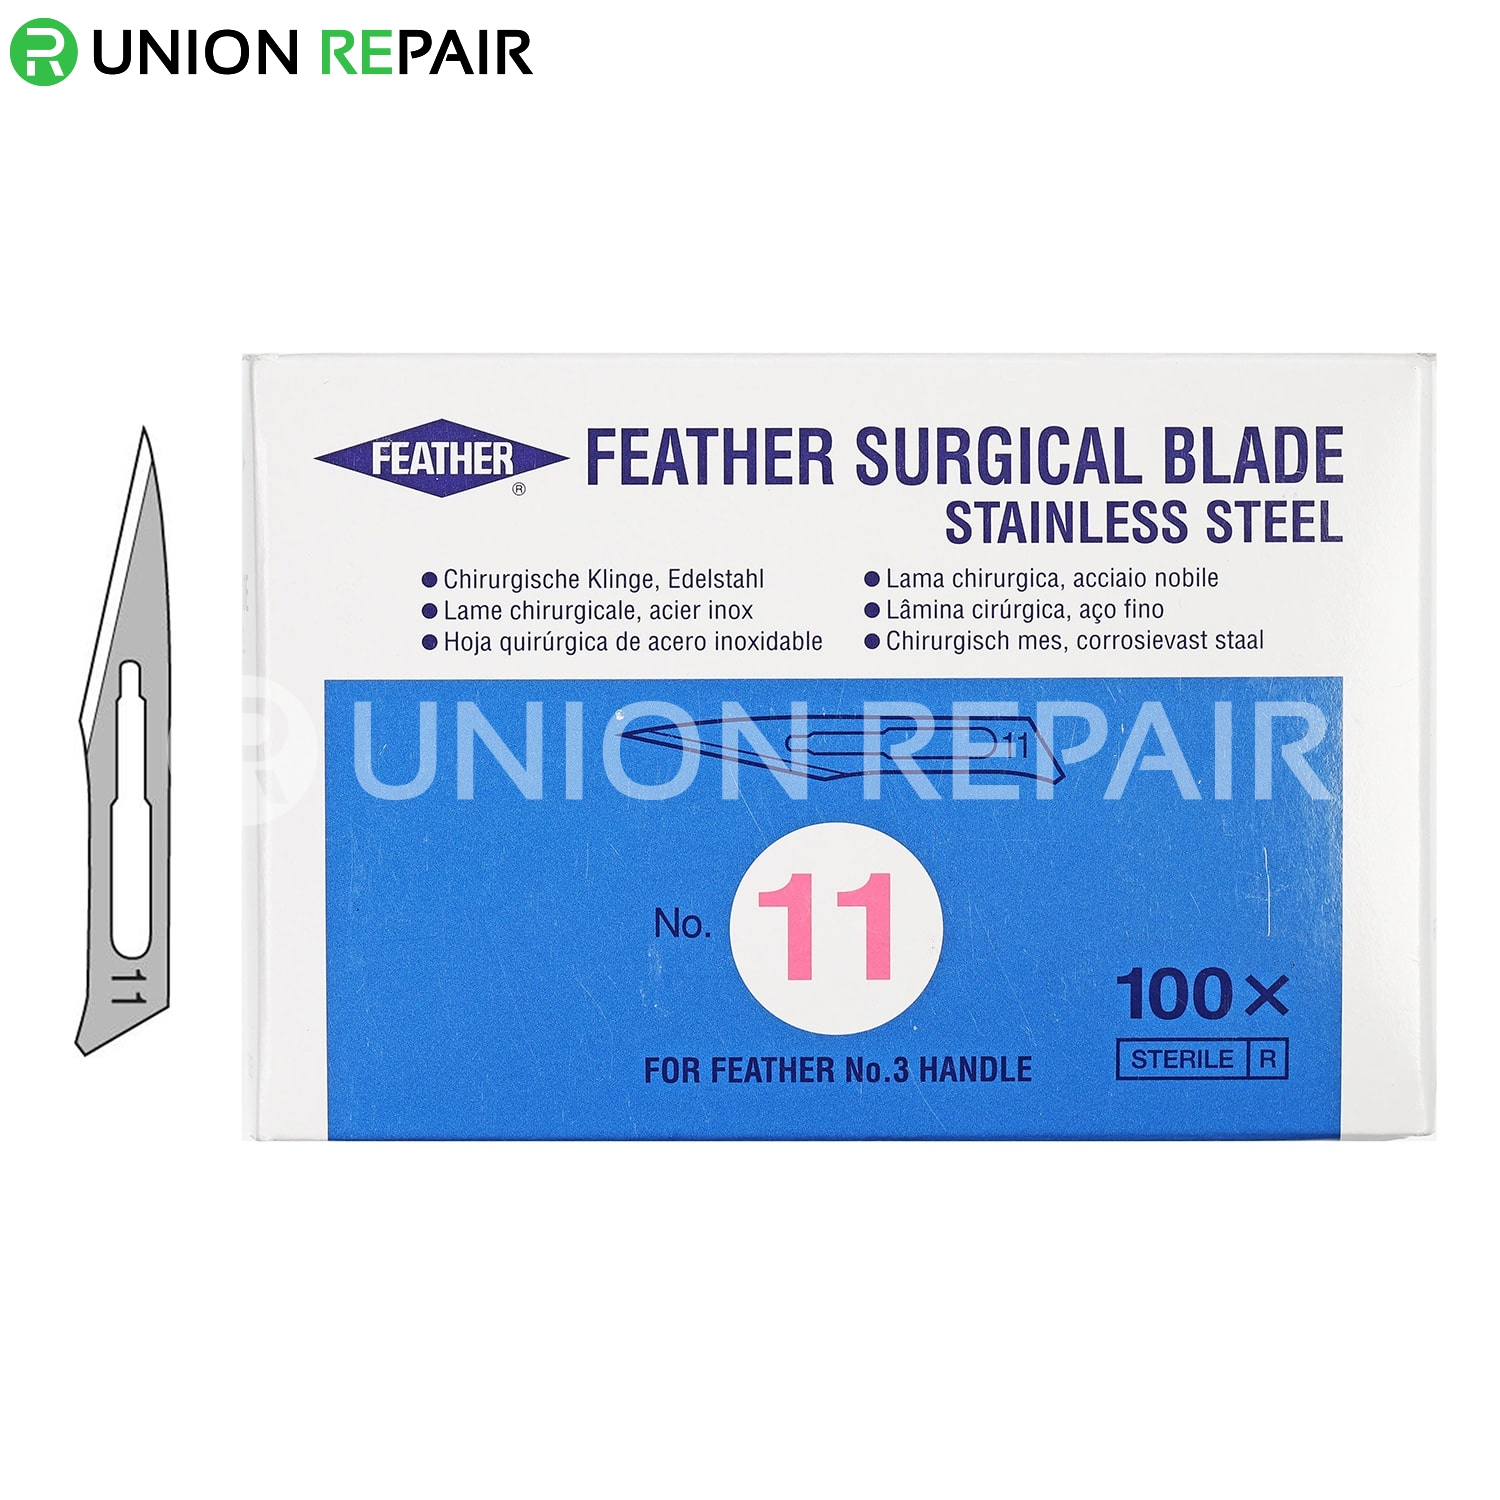 Feather #11 Sterile Surgical Blades (100pcs/box)